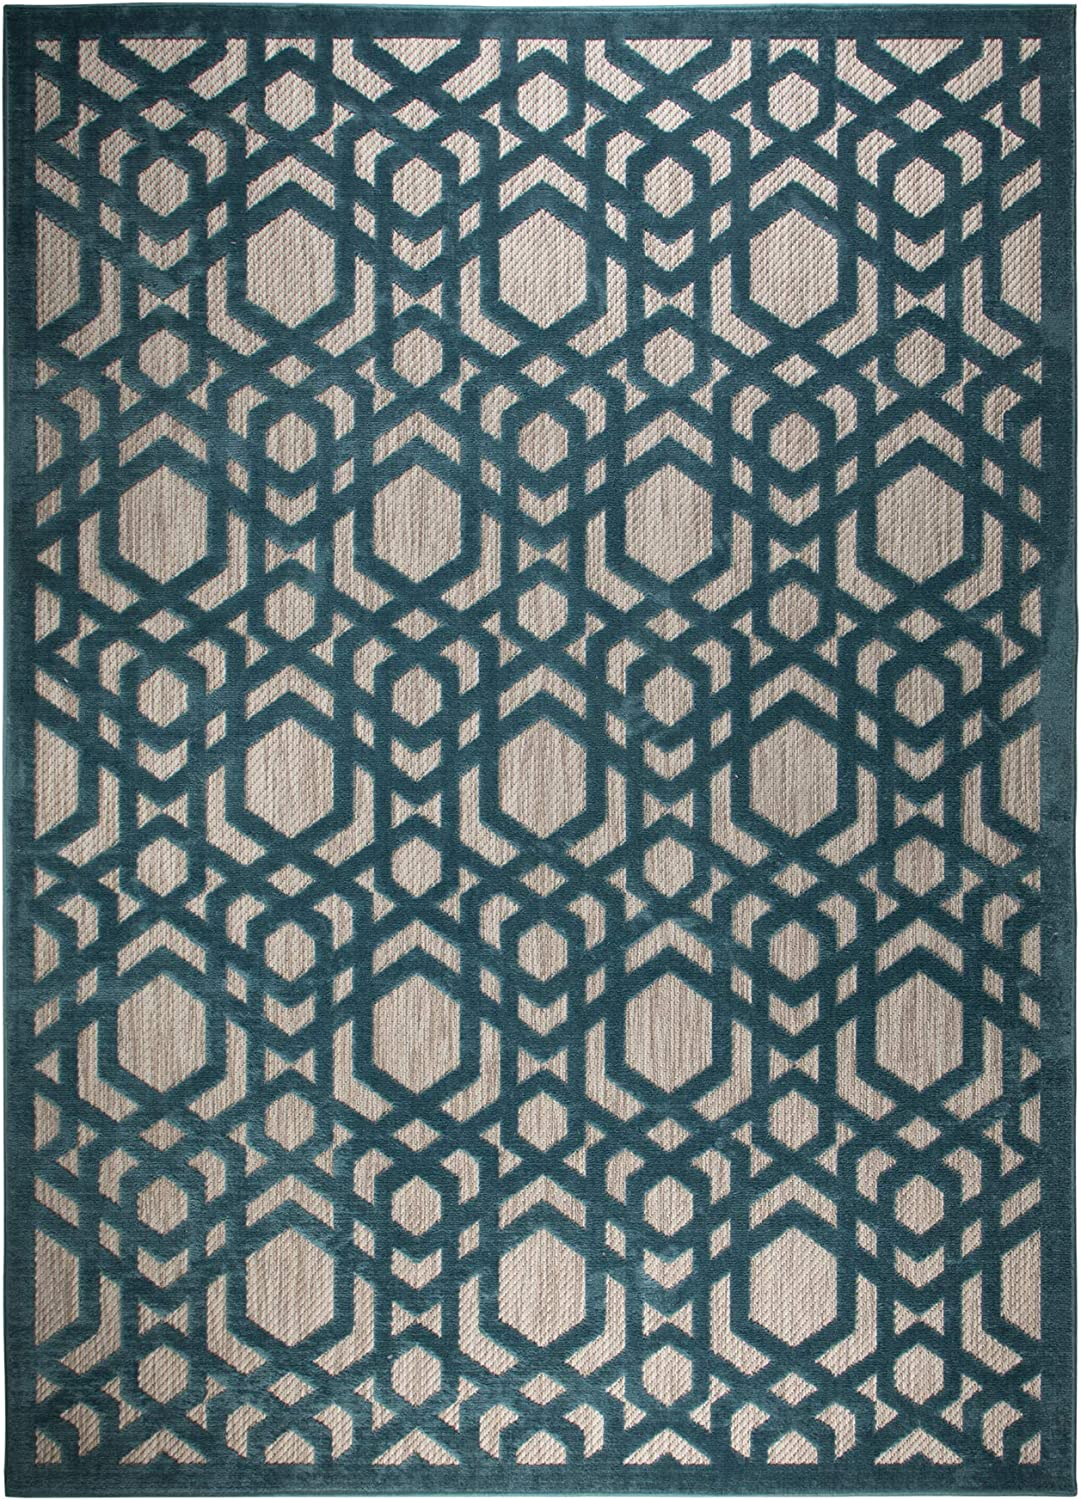 2x77 Lord of Rugs Piatto Oro Blue Geometric Flatweave Outdoor and Indoor Rug Home Carpet and Runner Runner 60x230 cm